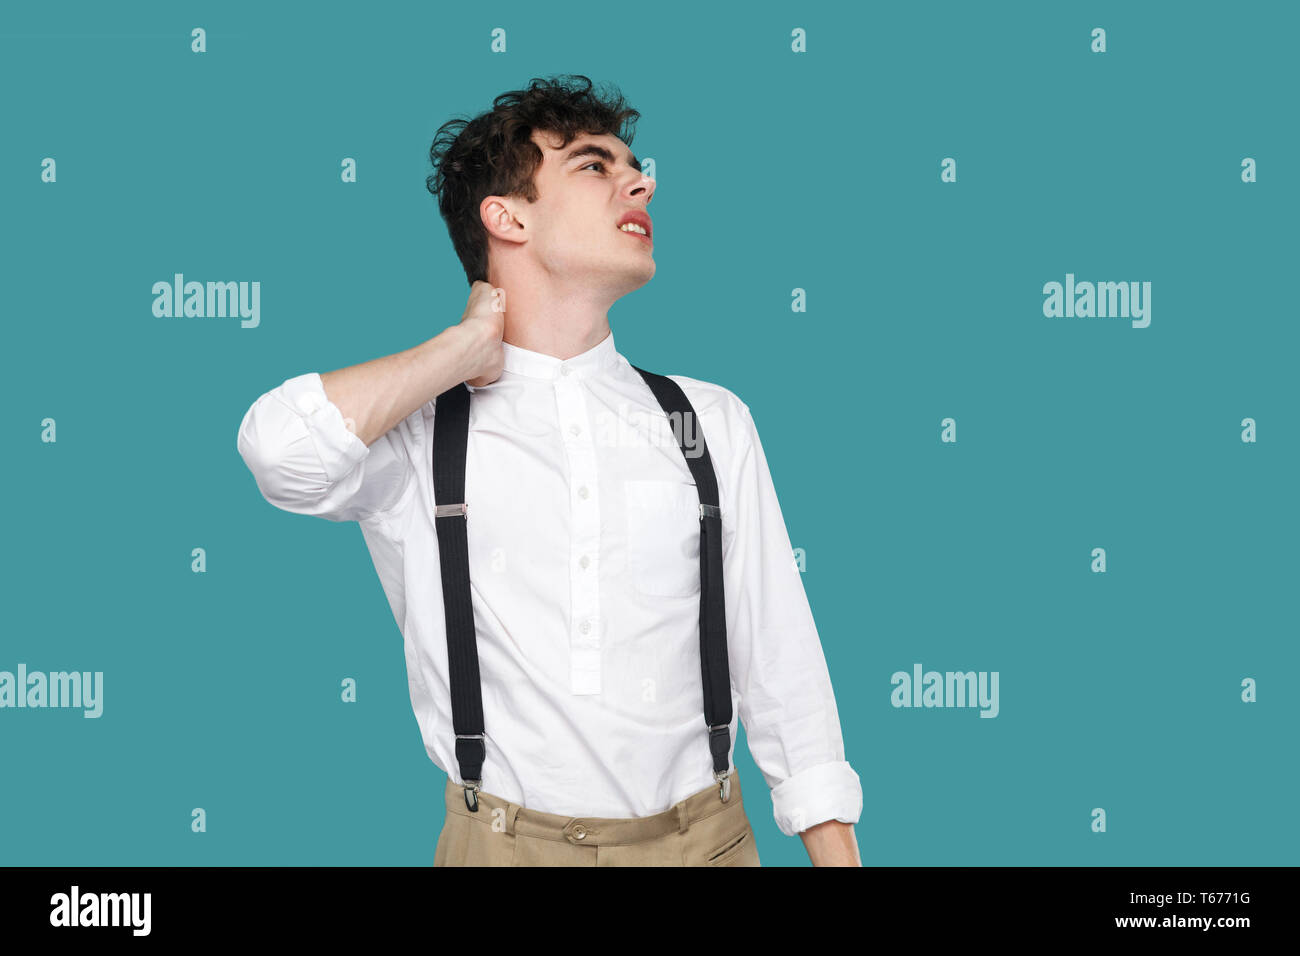 Neck pain. Man holding his painful or injury pain. Portrait of handsome curly young businessman in classic casual white shirt and suspender standing.  - Stock Image